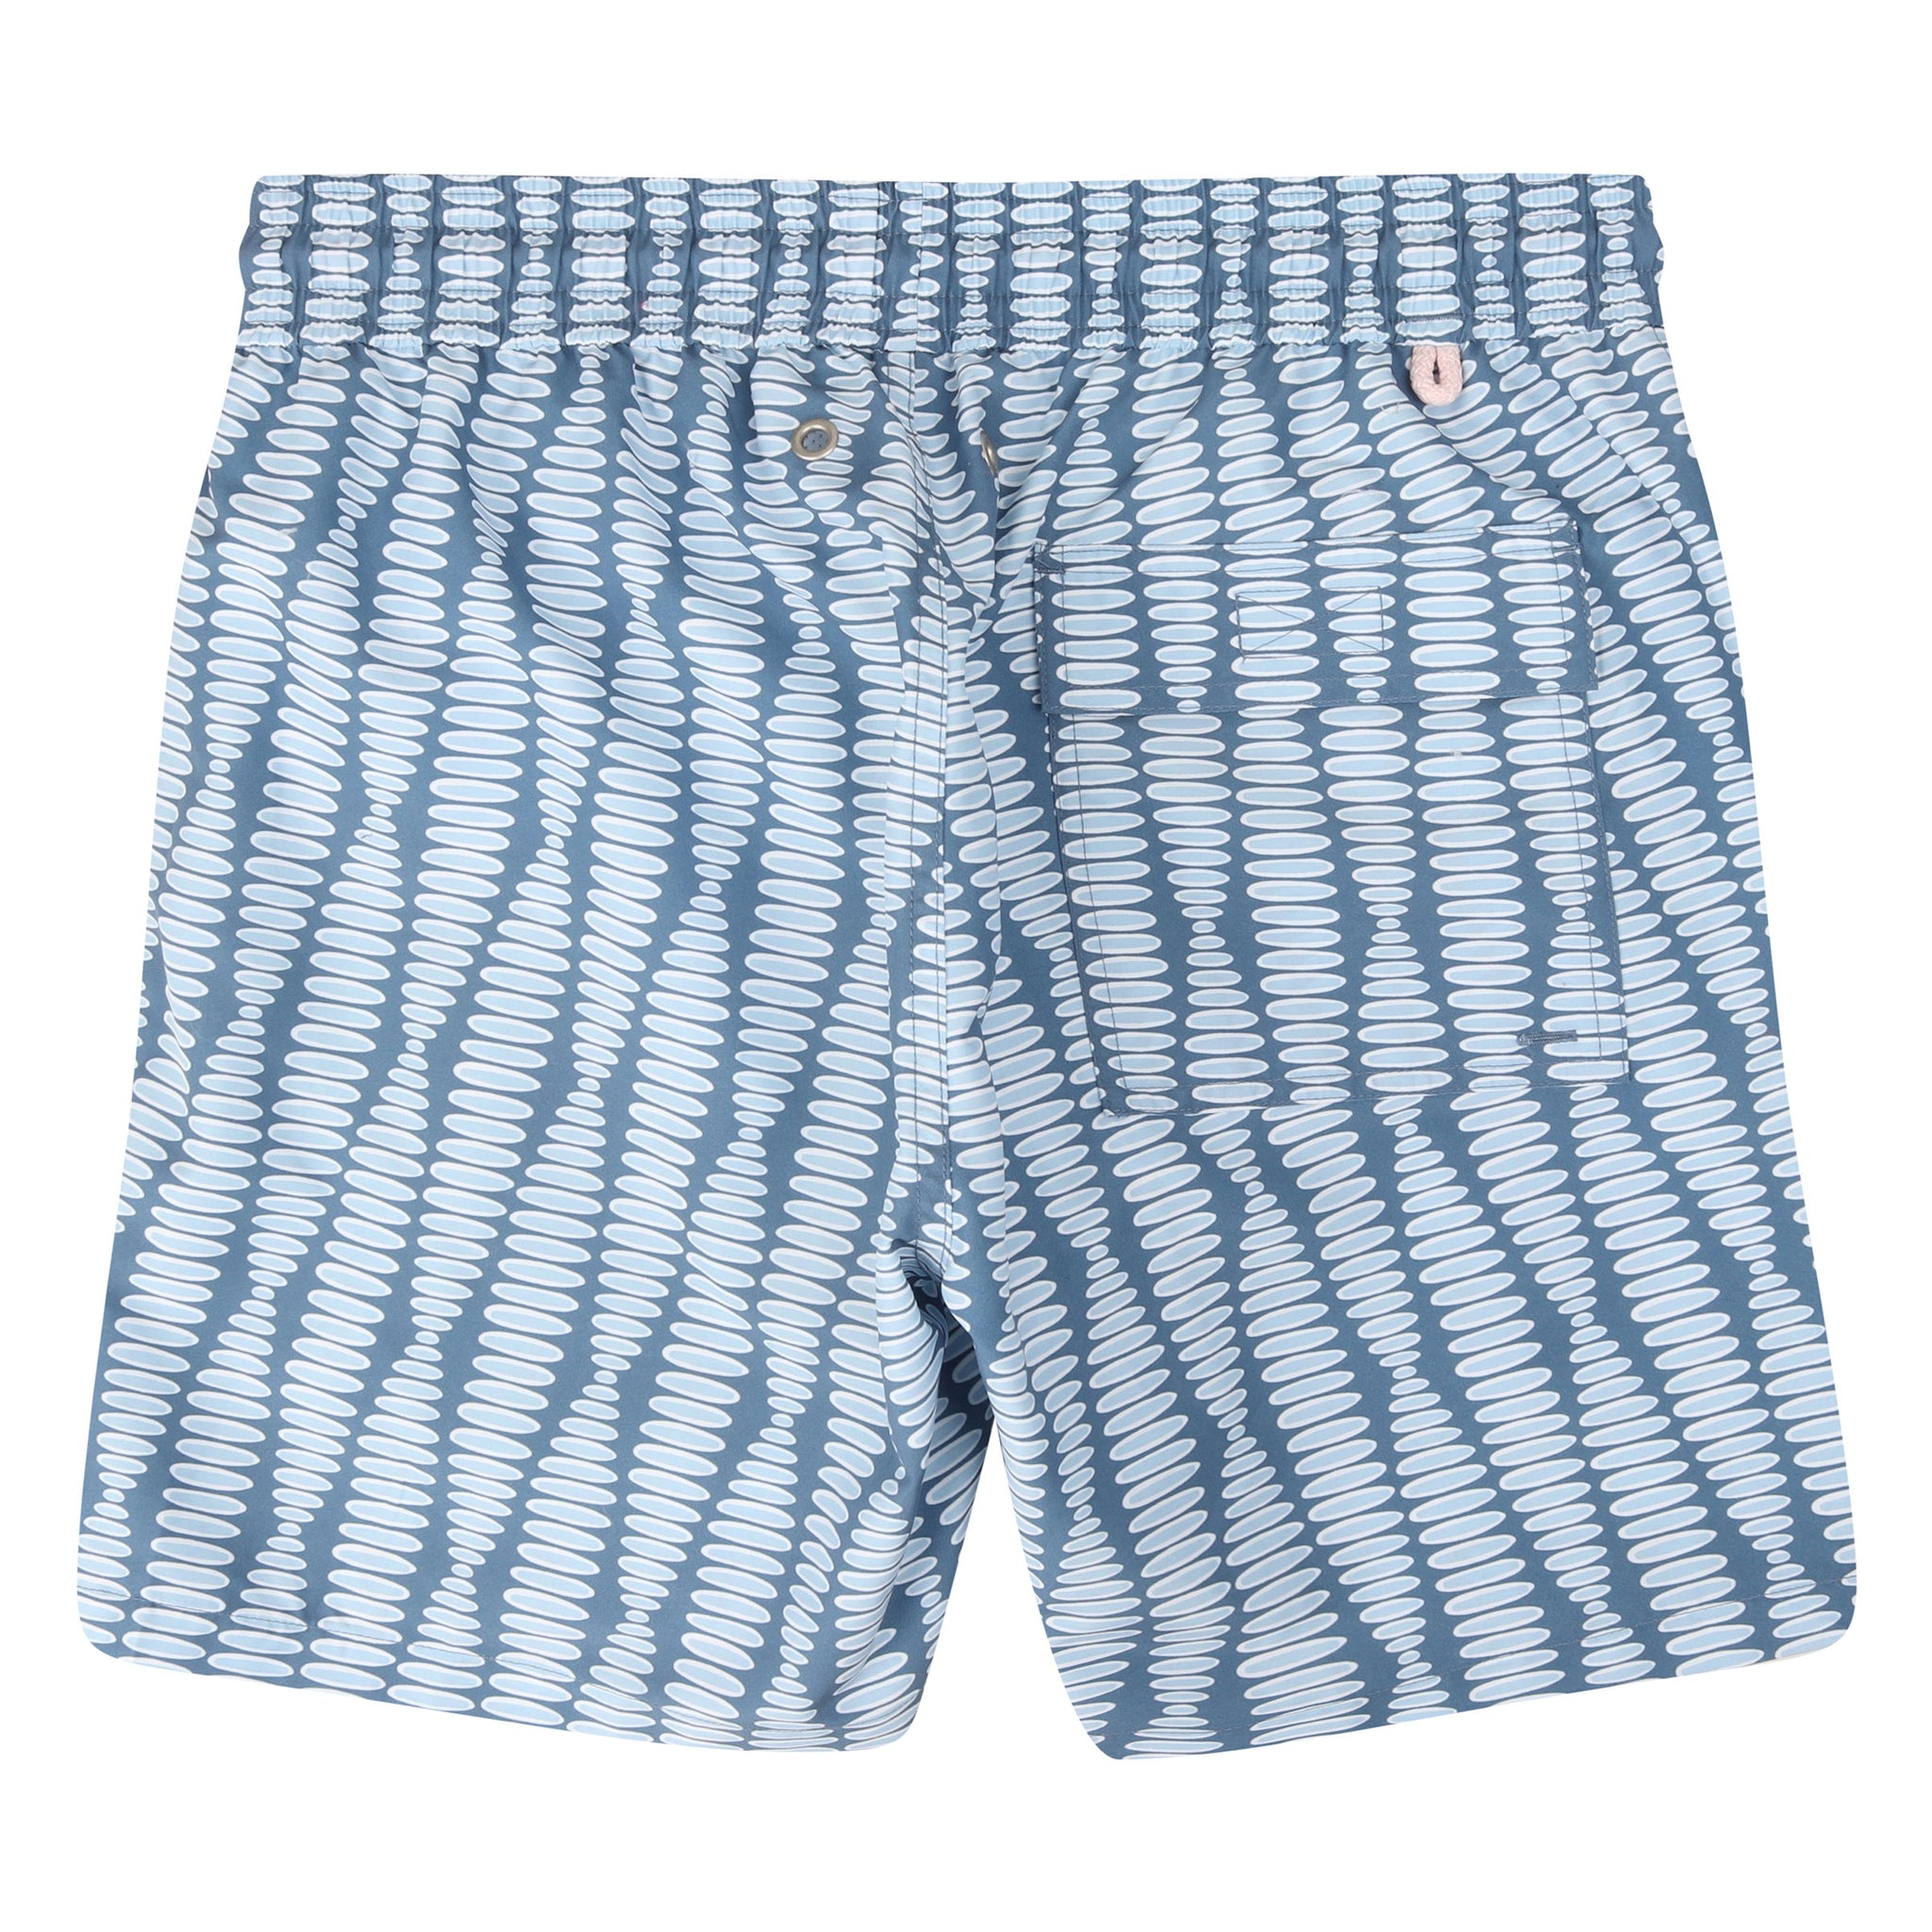 5ffe7a279 Mens swim trunks : FLAMBOYANT SEED - NAVY designer Lotty B Mustique holiday  packing